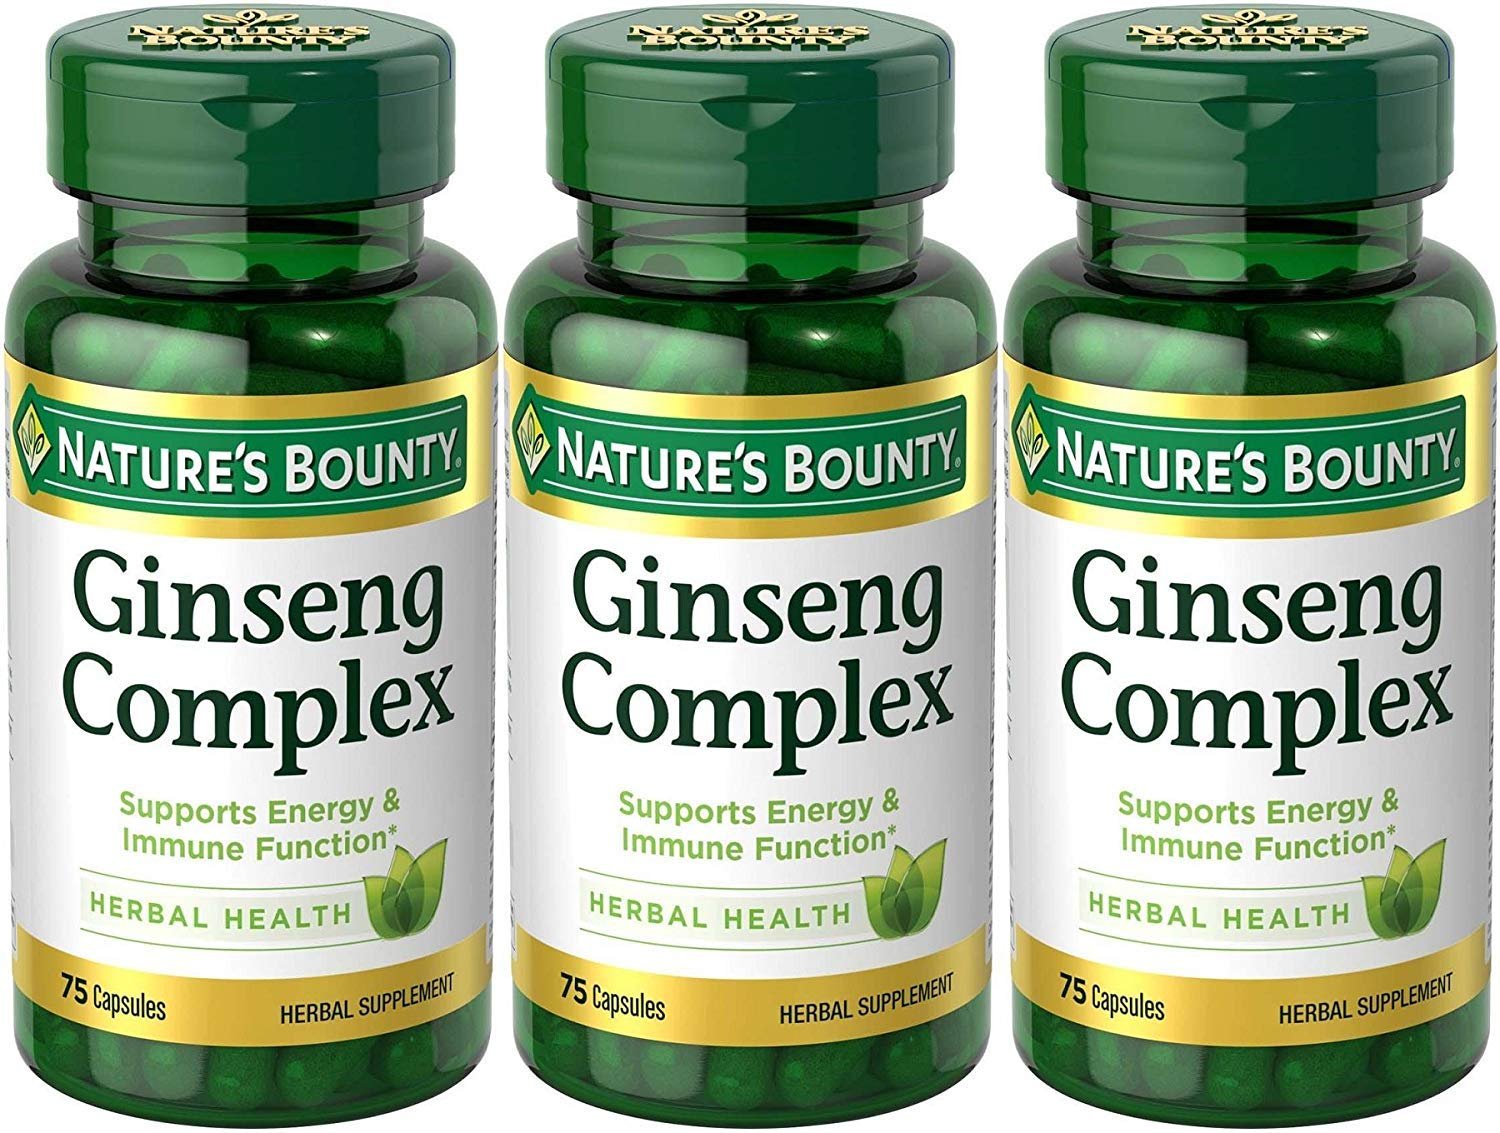 Nature's Bounty Ginseng Complex Herbal Health, 225 Capsules (3 X 75 Count Bottles)